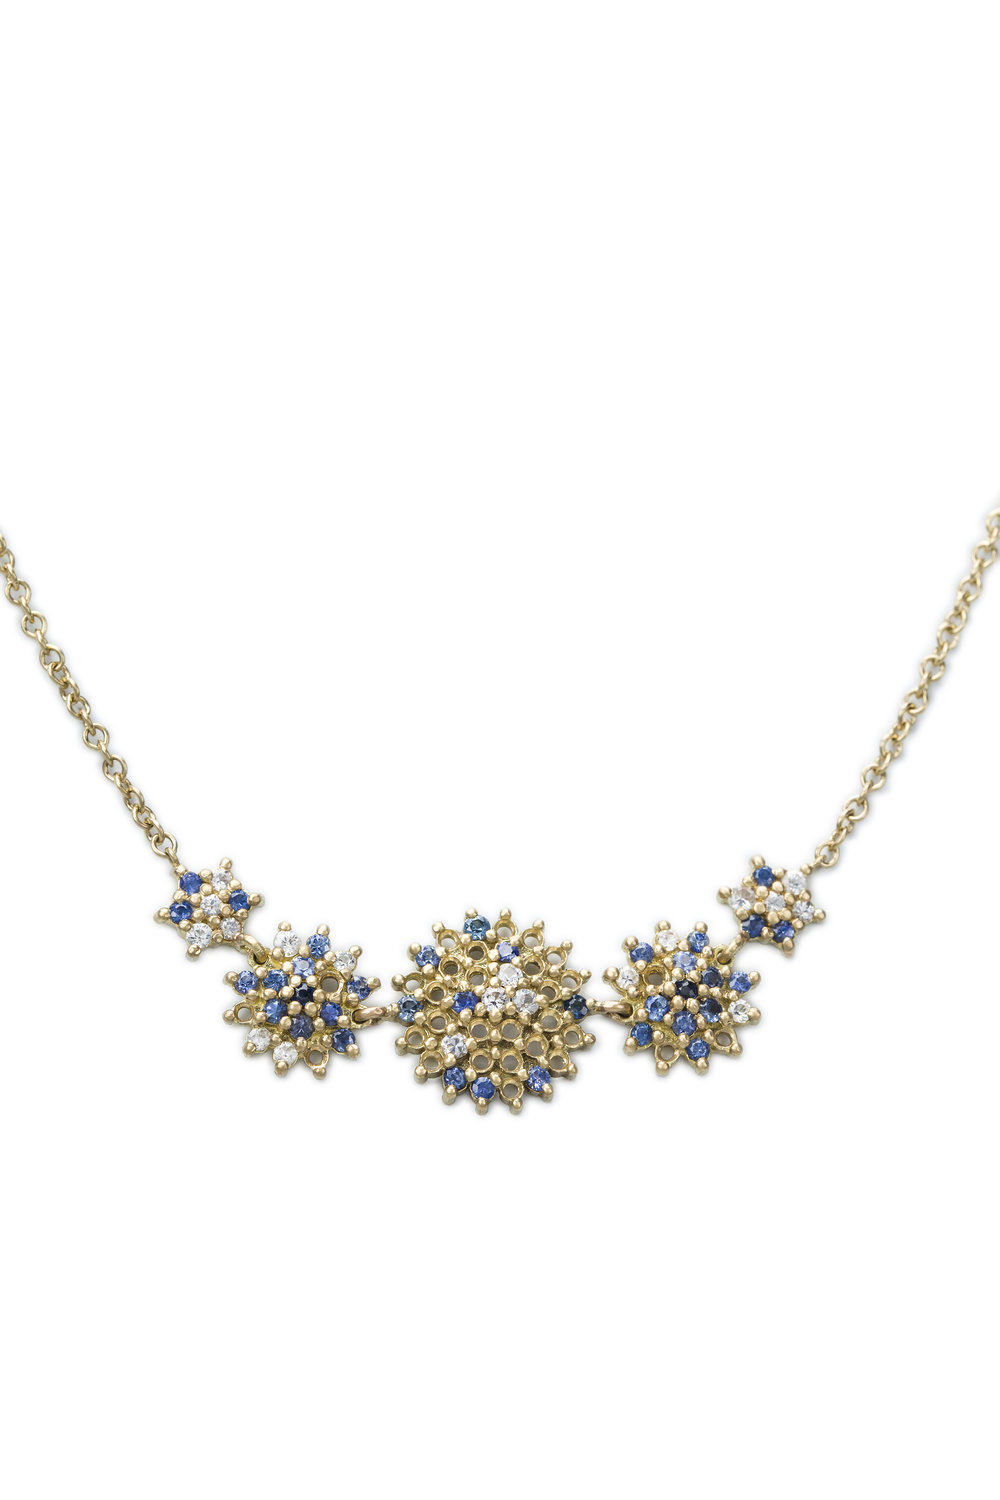 Multi coloured sapphire star five piece necklace, £5600